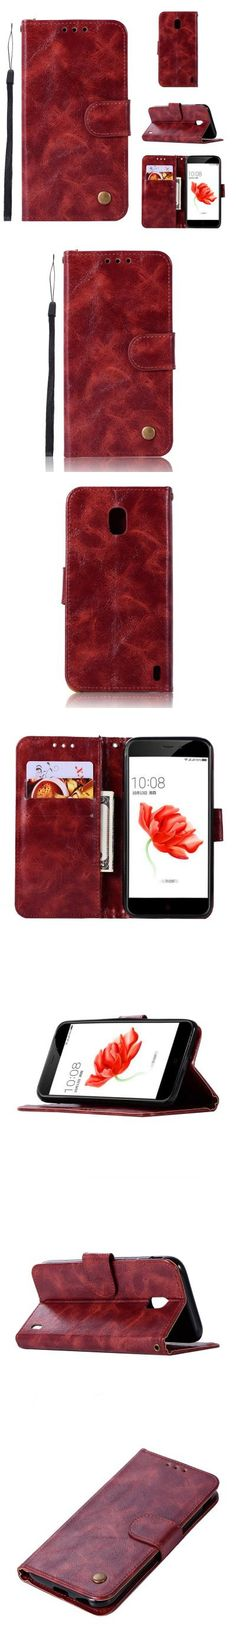 Flip Leather Case PU Wallet Case For Nokia 2 Smart Cover Extravagant Retro Fashion Phone Bag with Stand